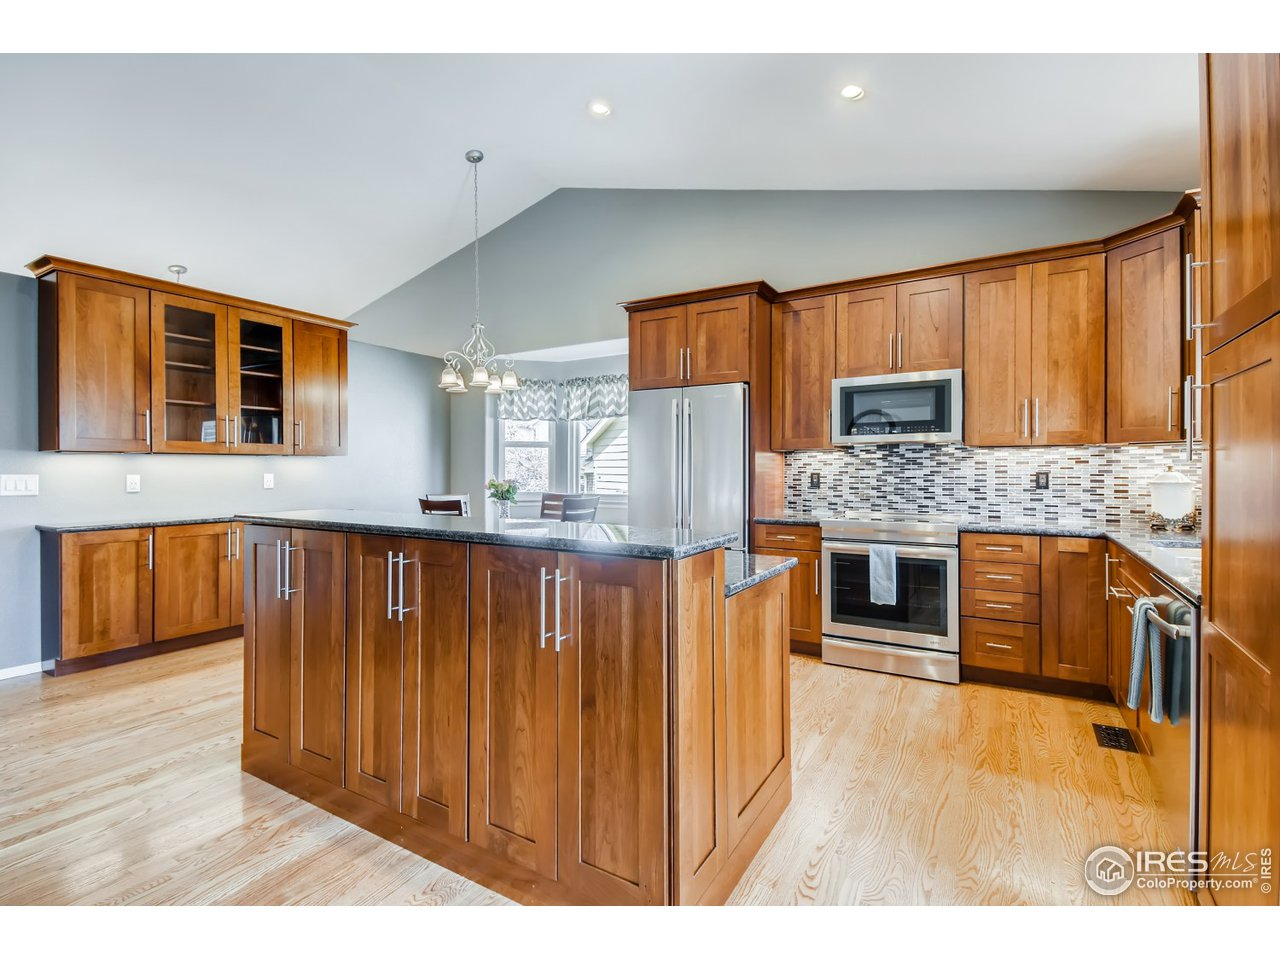 Custom kitchen loaded with extras. Cherry cabinets, soft close doors, sliding utensil racks, swing out pantry racks, induction stove, convection microwave, Jenn Air SS appl. custom backsplash, under cab lighting and refinished wood floors.